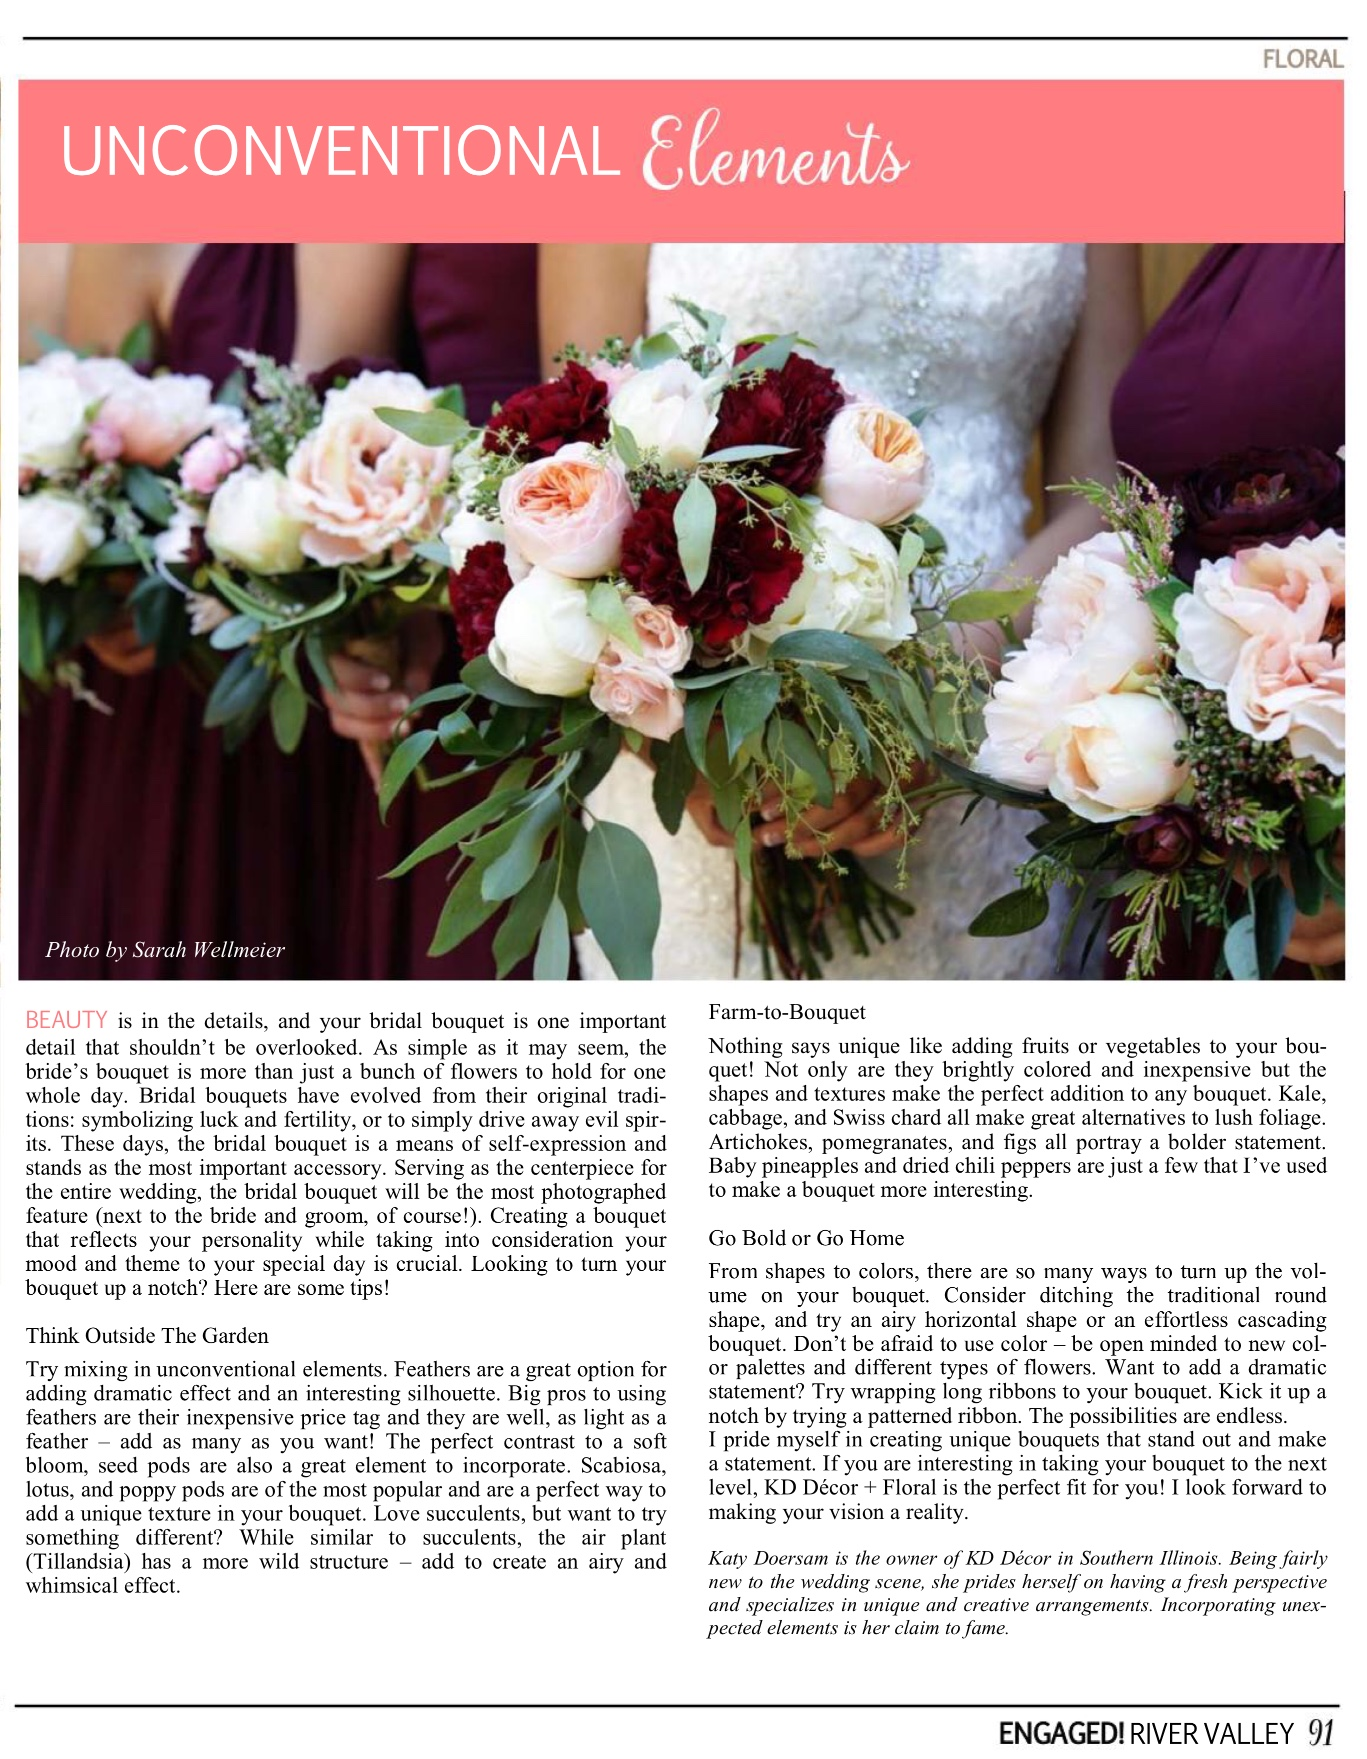 Unconventional Elements - In the Spring/Summer issue of Engaged River Valley, I write about how to step out of the box and how to incorporate unique elements into your bridal bouquet -you can read the article by clicking below.